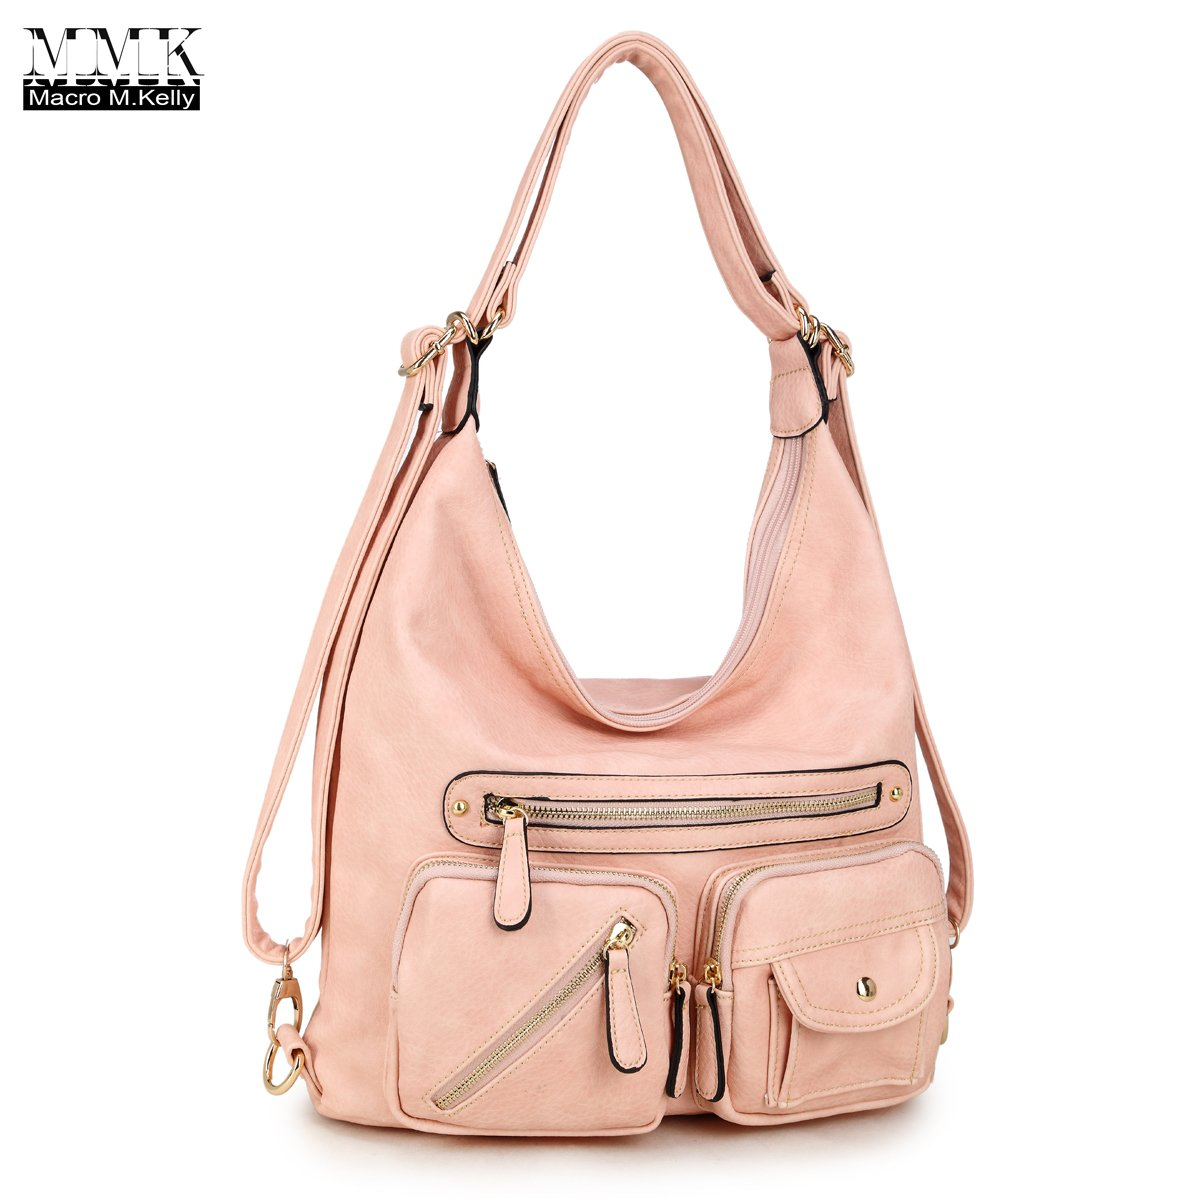 MMK collection Women Fashion Shoulder Backpack (6331)~Designer Purse Hobo bag for Women ~Multi Pocket Backpack~ Beautiful Designer Shoulder bag (MA-09-6331-PINK) by Marco M. Kelly